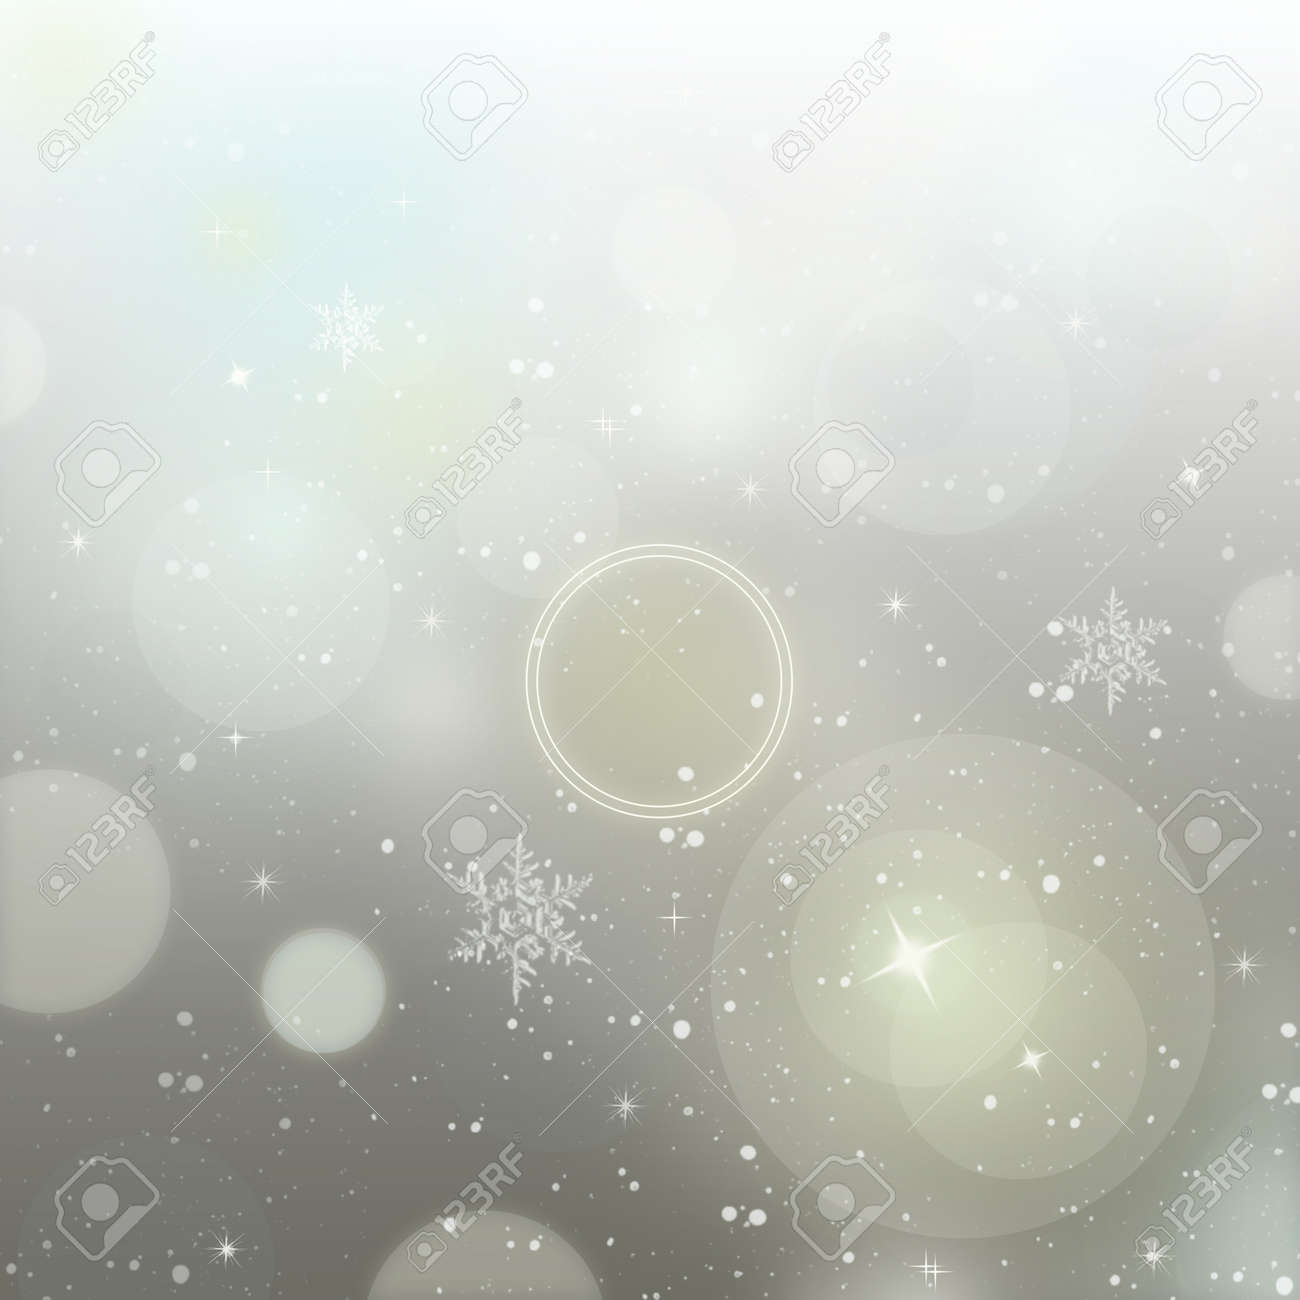 light silver abstract new year background with white snowflakes stock photo 16412941